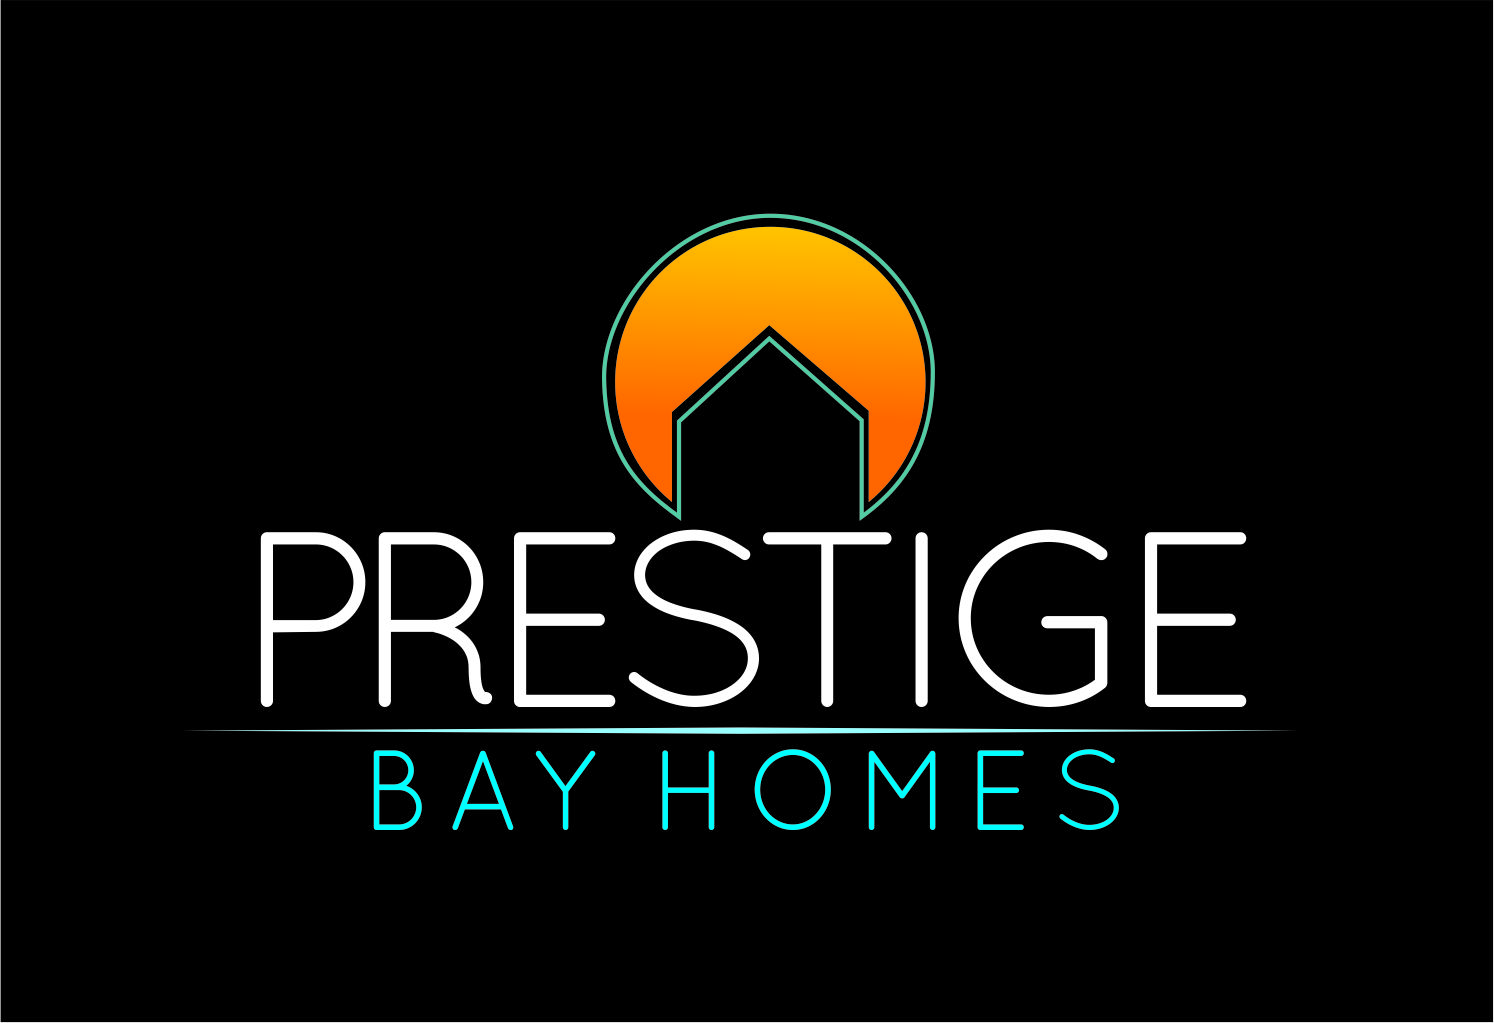 Logo Design by Private User - Entry No. 102 in the Logo Design Contest Imaginative Logo Design for Prestige Bay Homes.